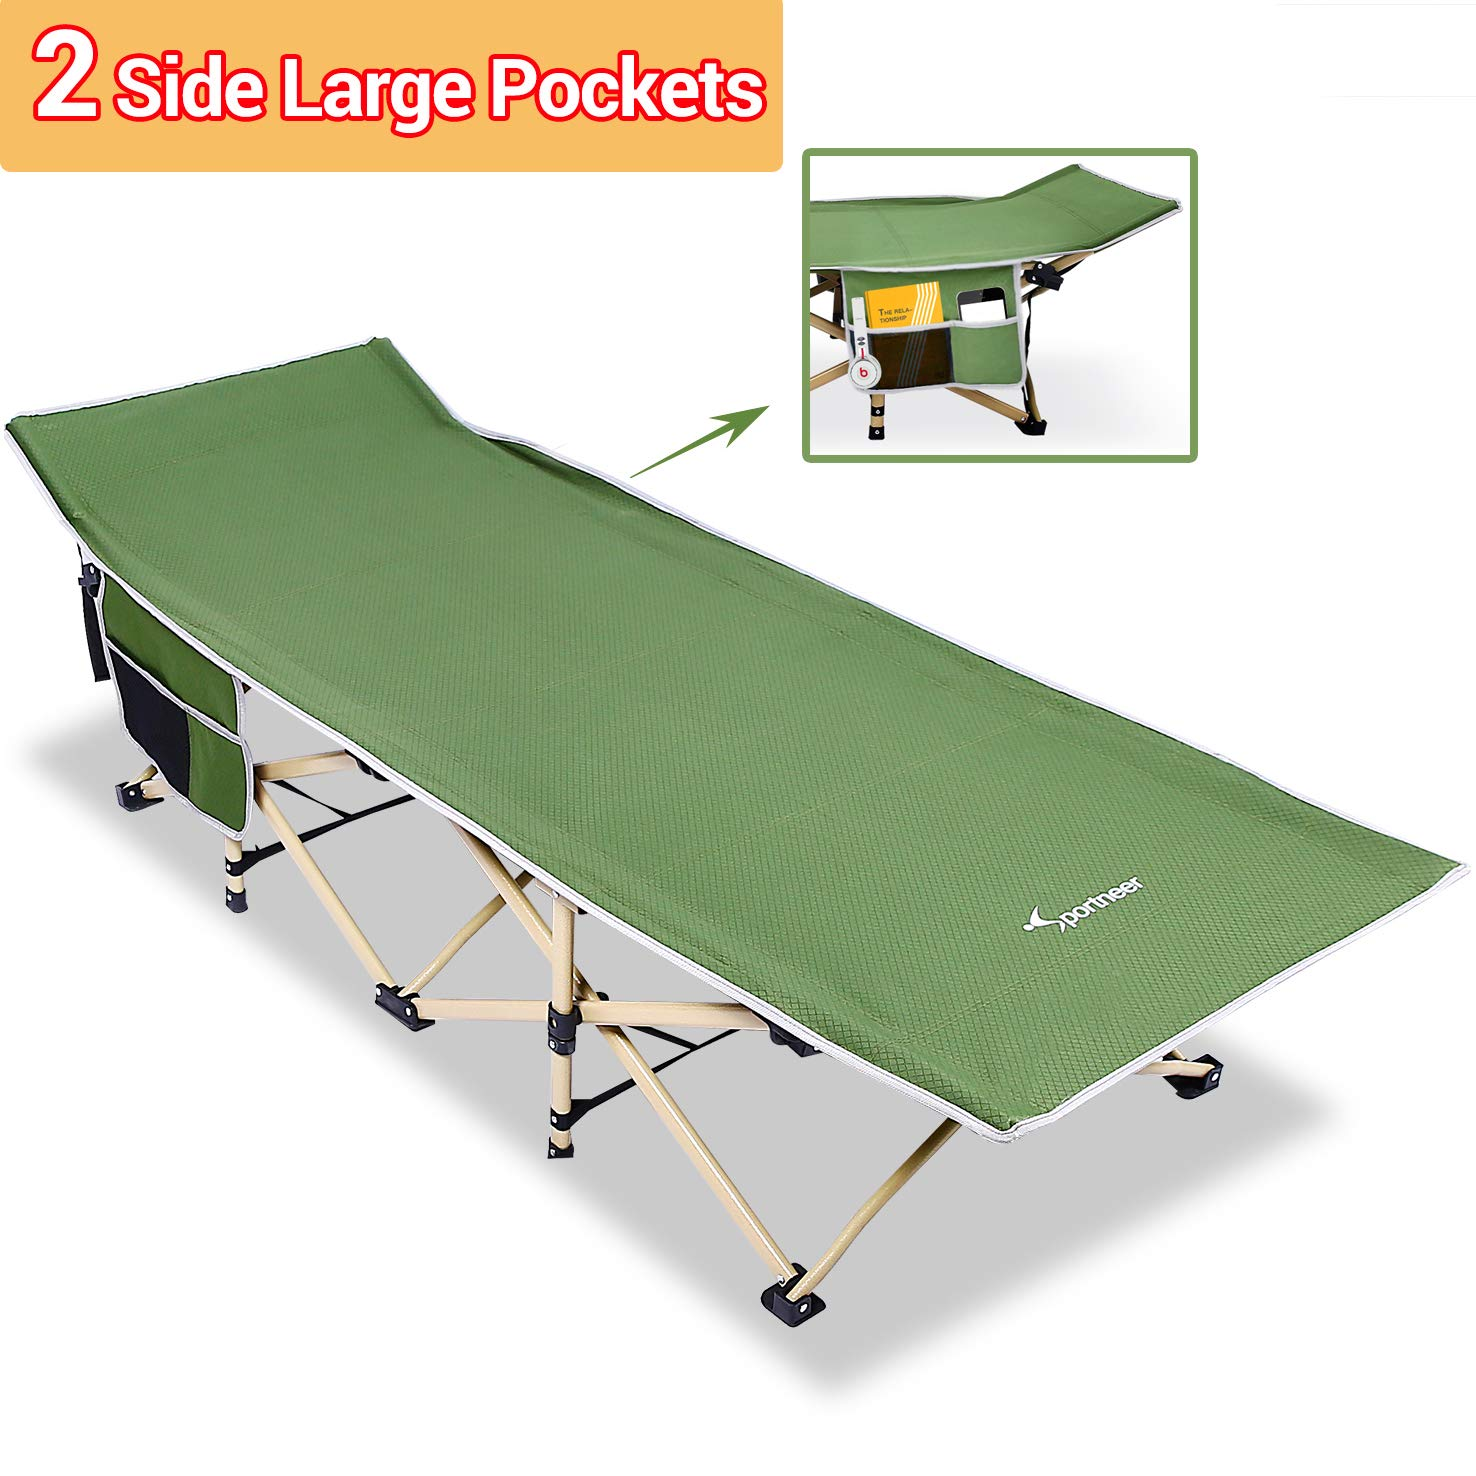 Sportneer Camping Cot, 2 Side Large Pockets Portable Folding Camp Bed Cots with Carry Bag, Max Load 450 LBS, for Camping, BBQ, Hiking, Backpacking, Beach, Office